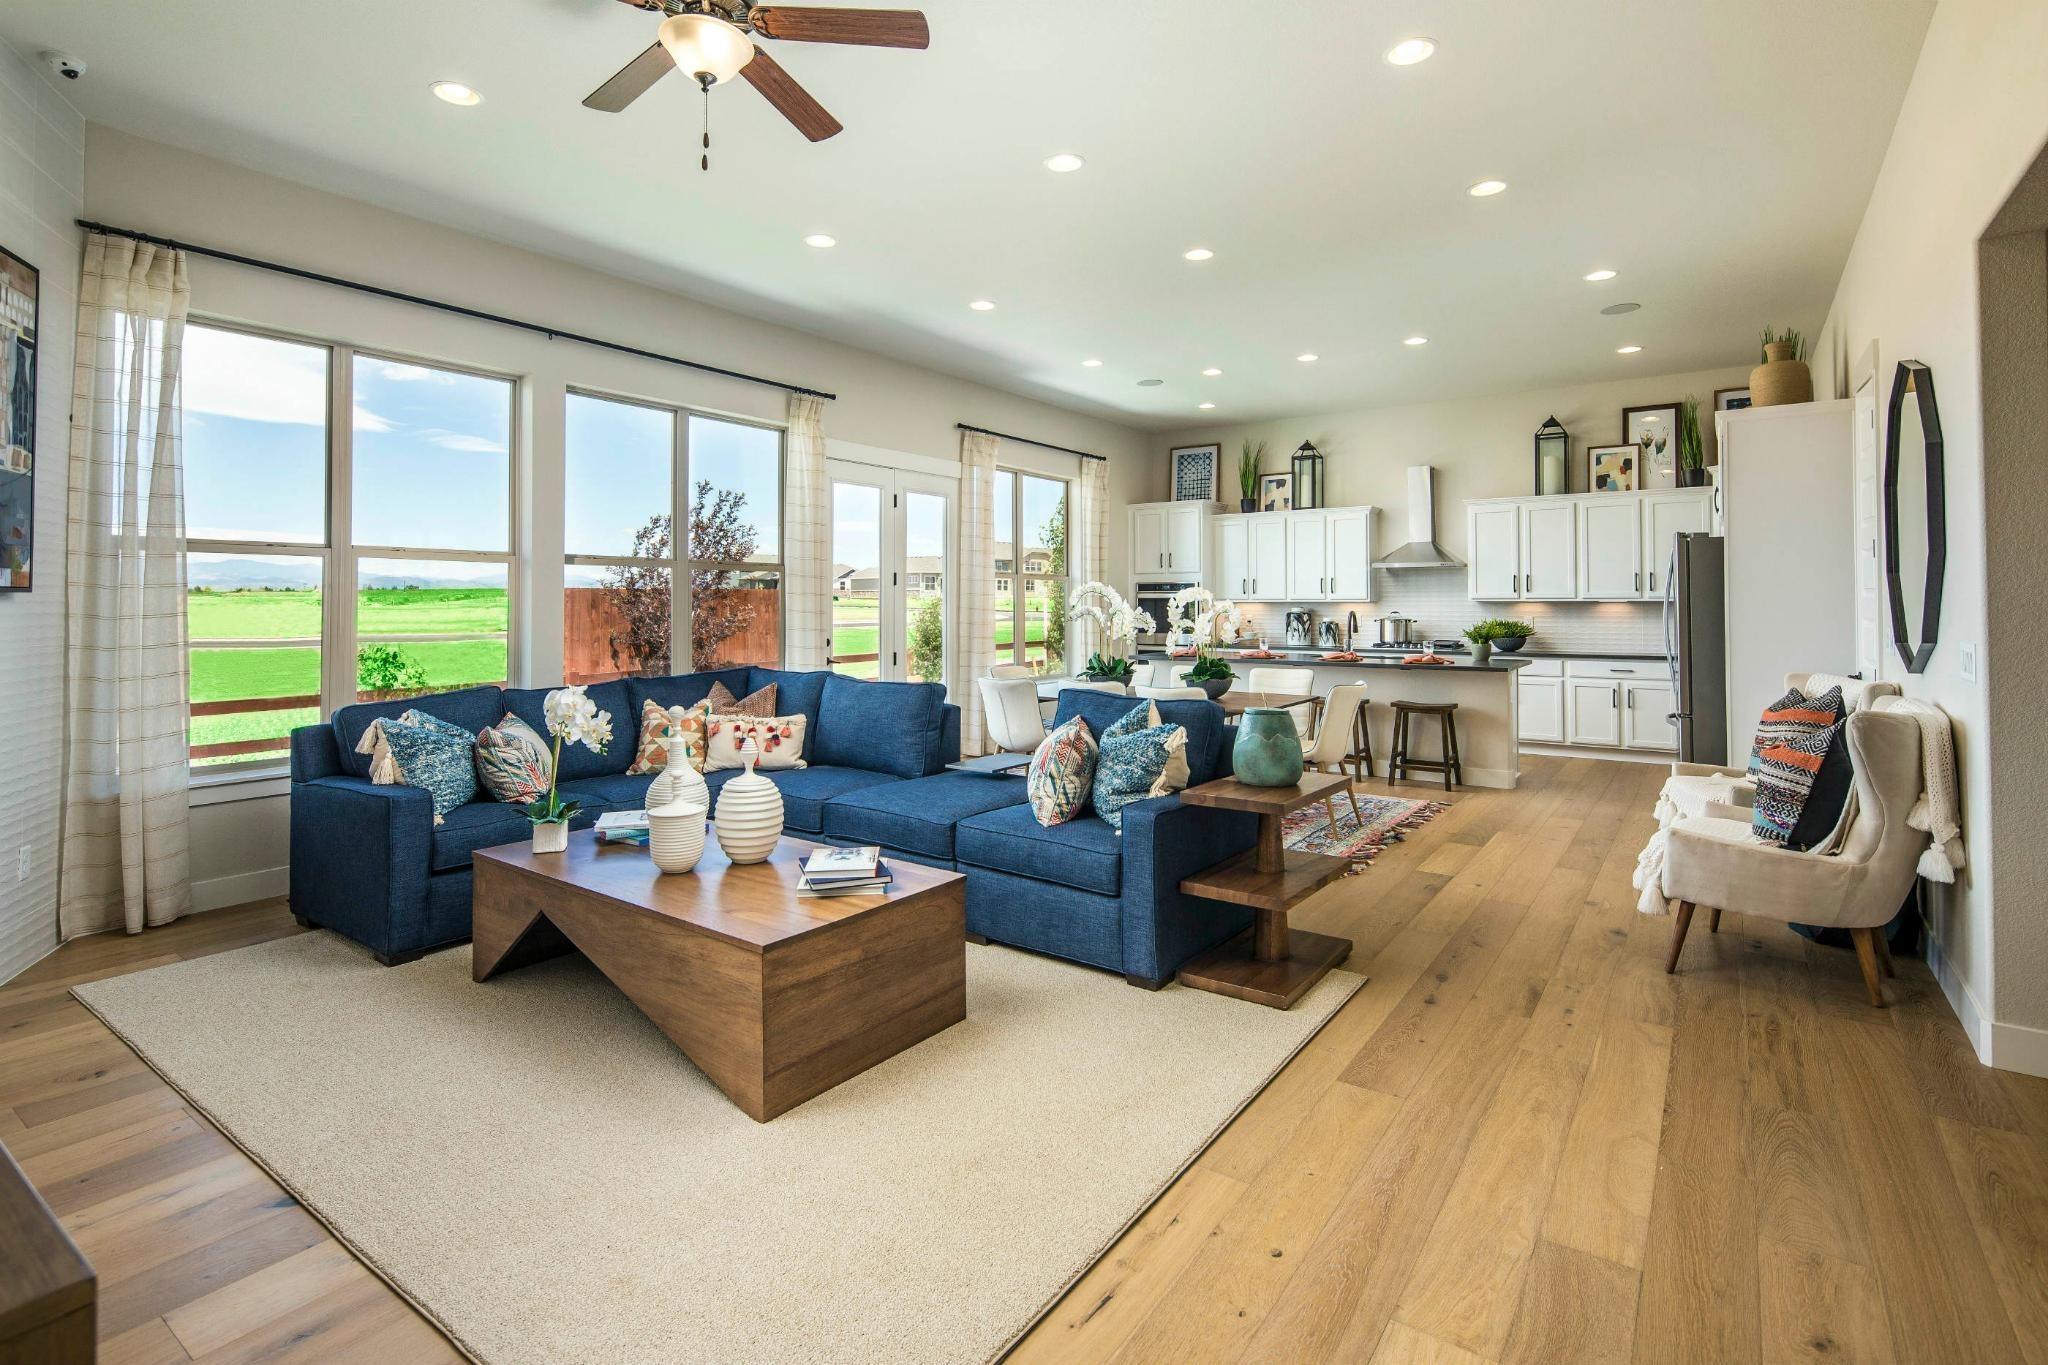 Living Area featured in the Plan C502 By American Legend Homes in Greeley, CO